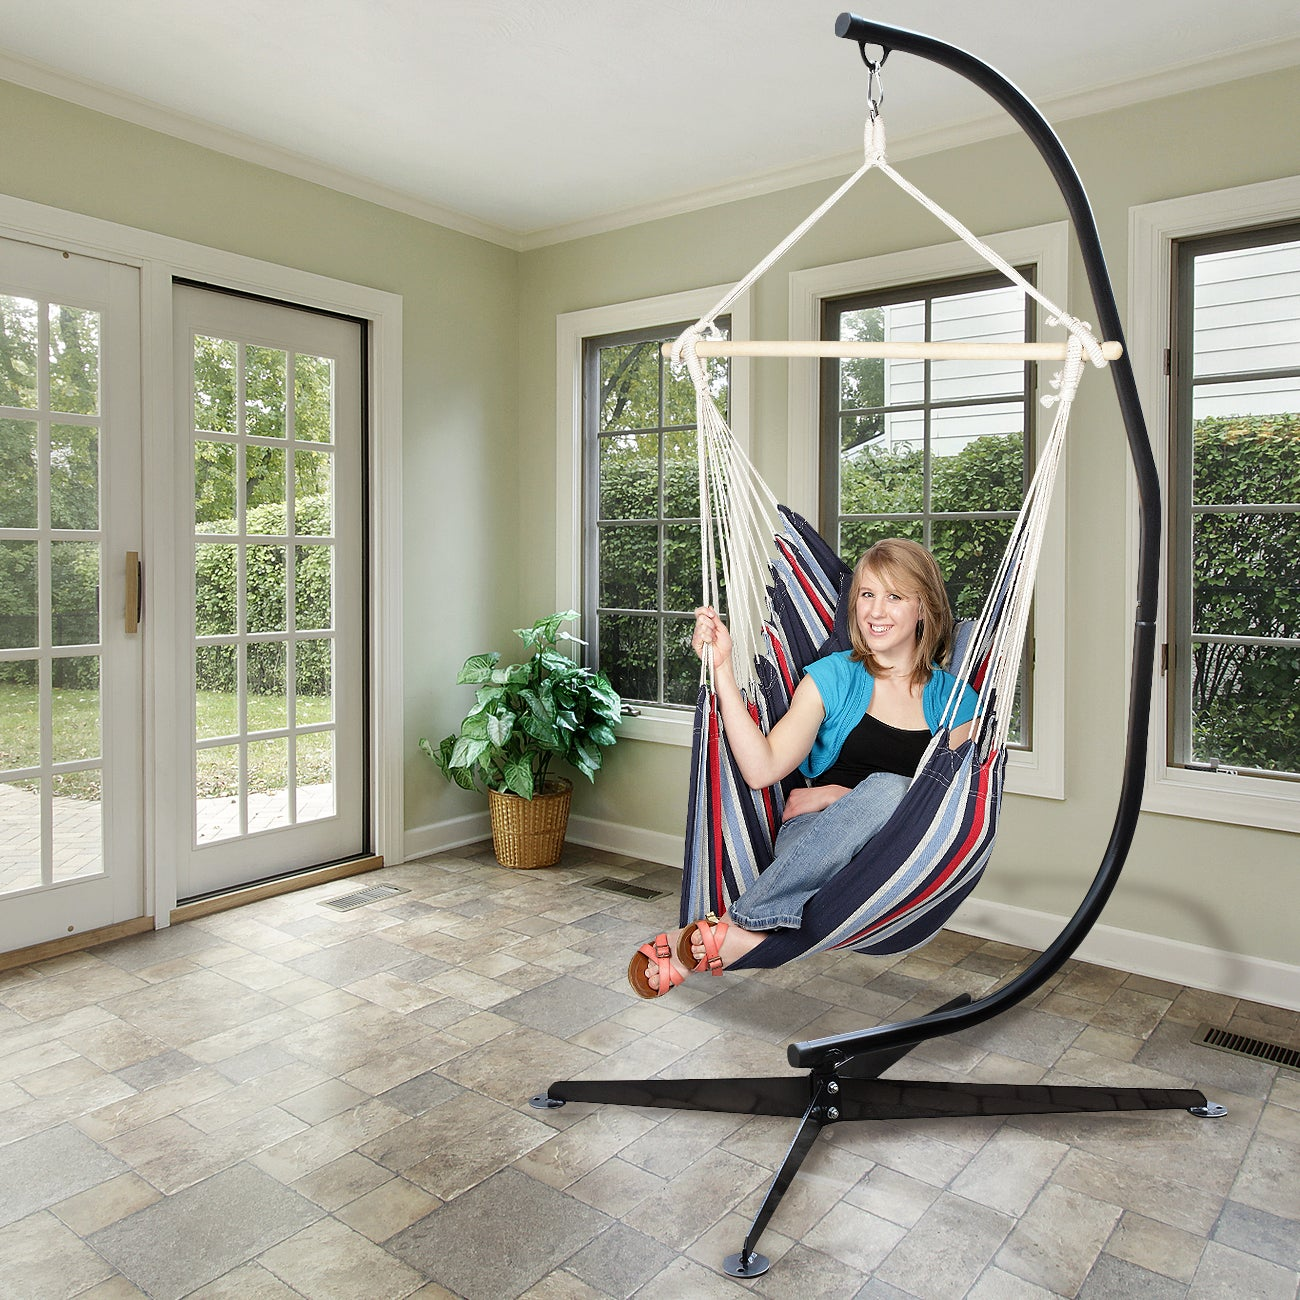 Shop Sorbus® Swivel Hammock Stand Chair Frame, Height Adjustable, 1 Person,  350 Pound Capacity (Black)   Free Shipping Today   Overstock.com   16066746